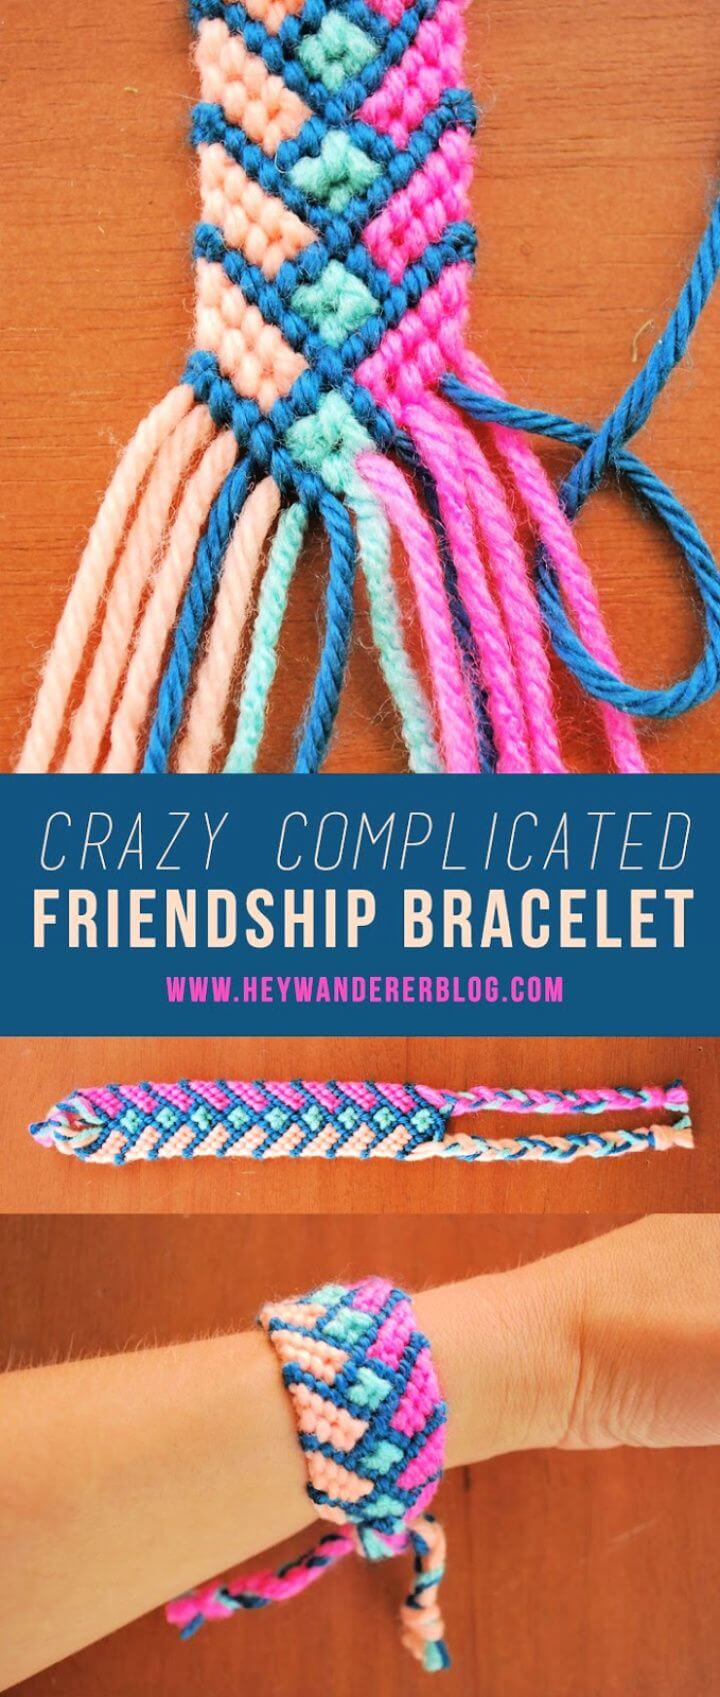 Crazy Complicated Friendship Bracelet